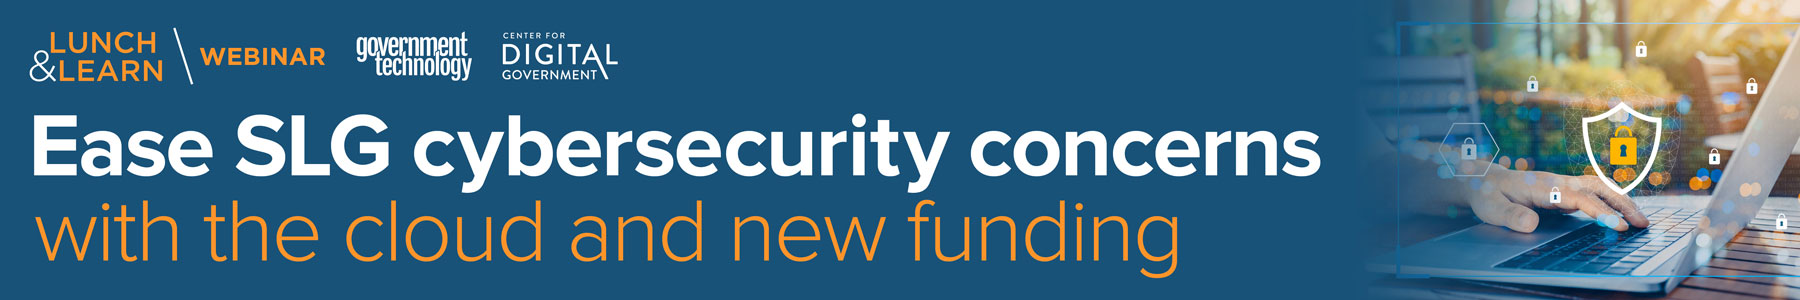 Ease SLG cybersecurity concerns with the cloud and new funding